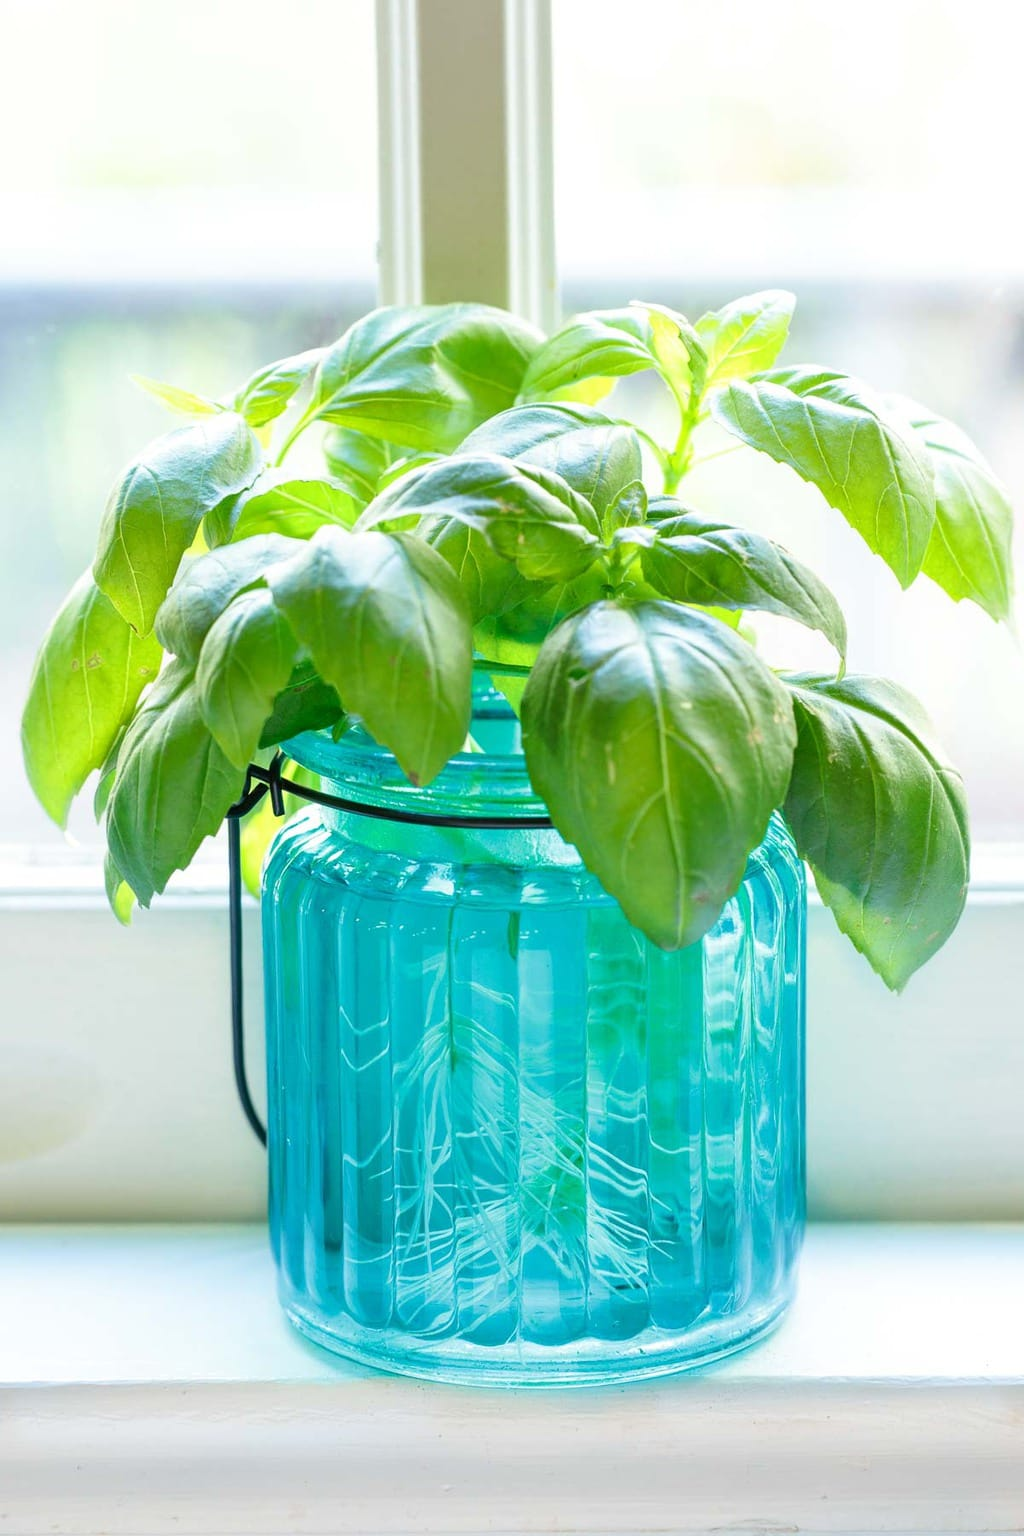 How to Grow Tulsi plant In Water - Put the plant in water